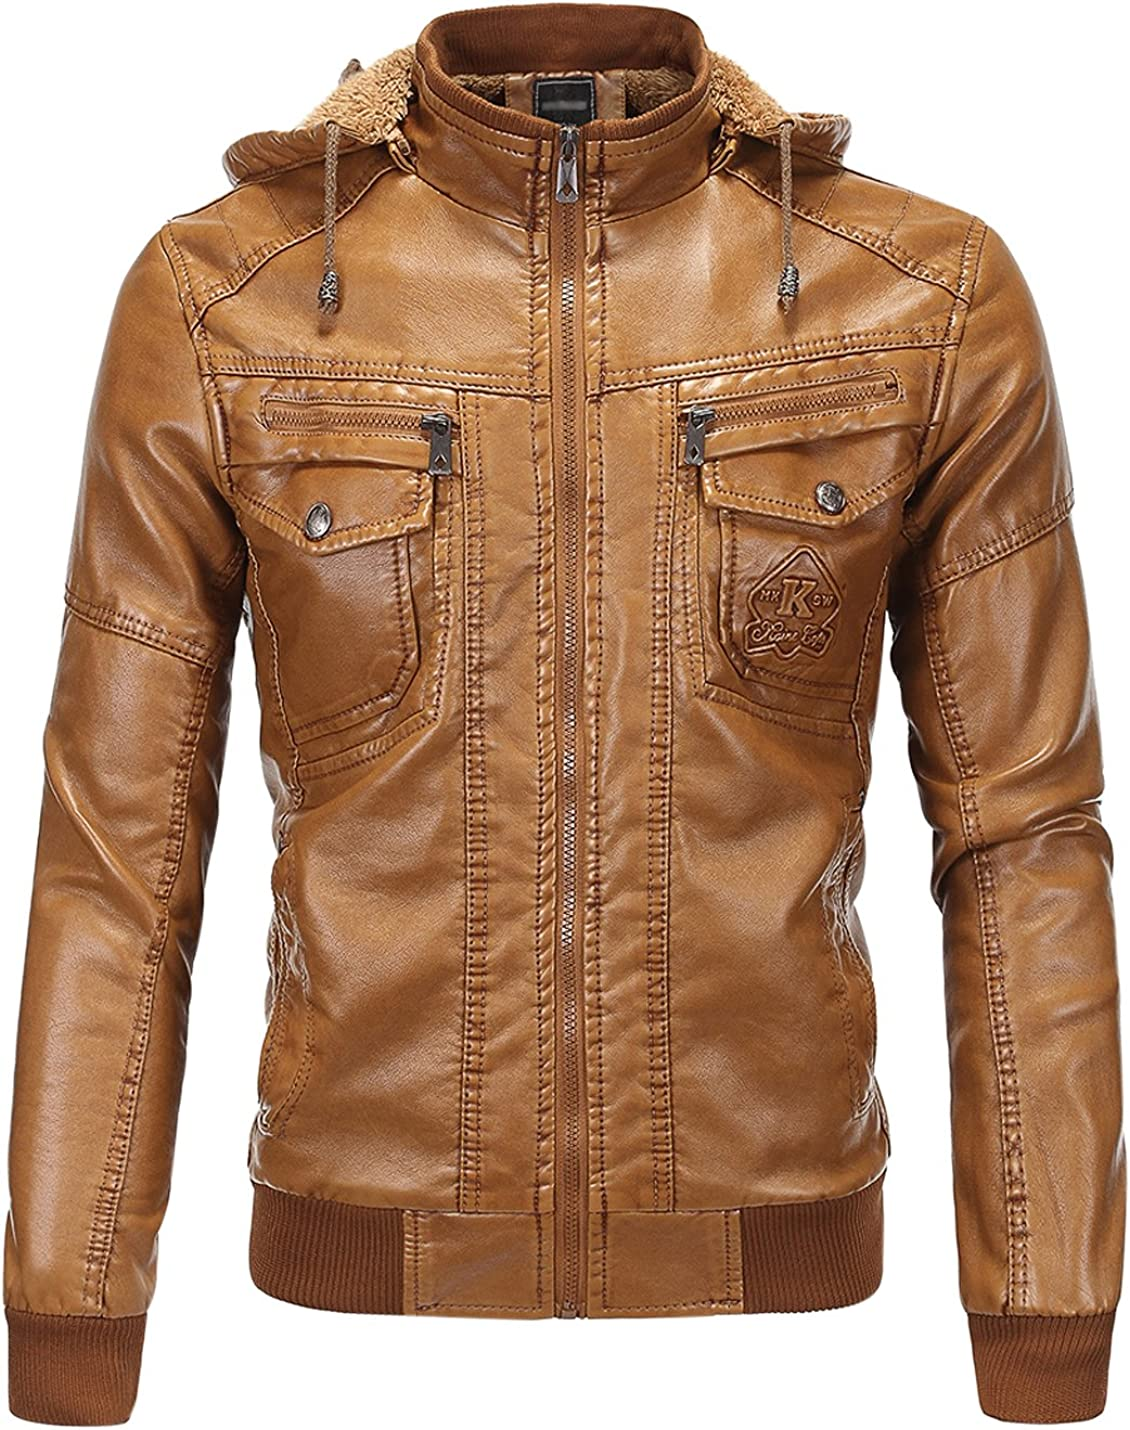 Gihuo Mens Vintage Fleece Lined Faux Leather Jacket with Removable Fur Hood